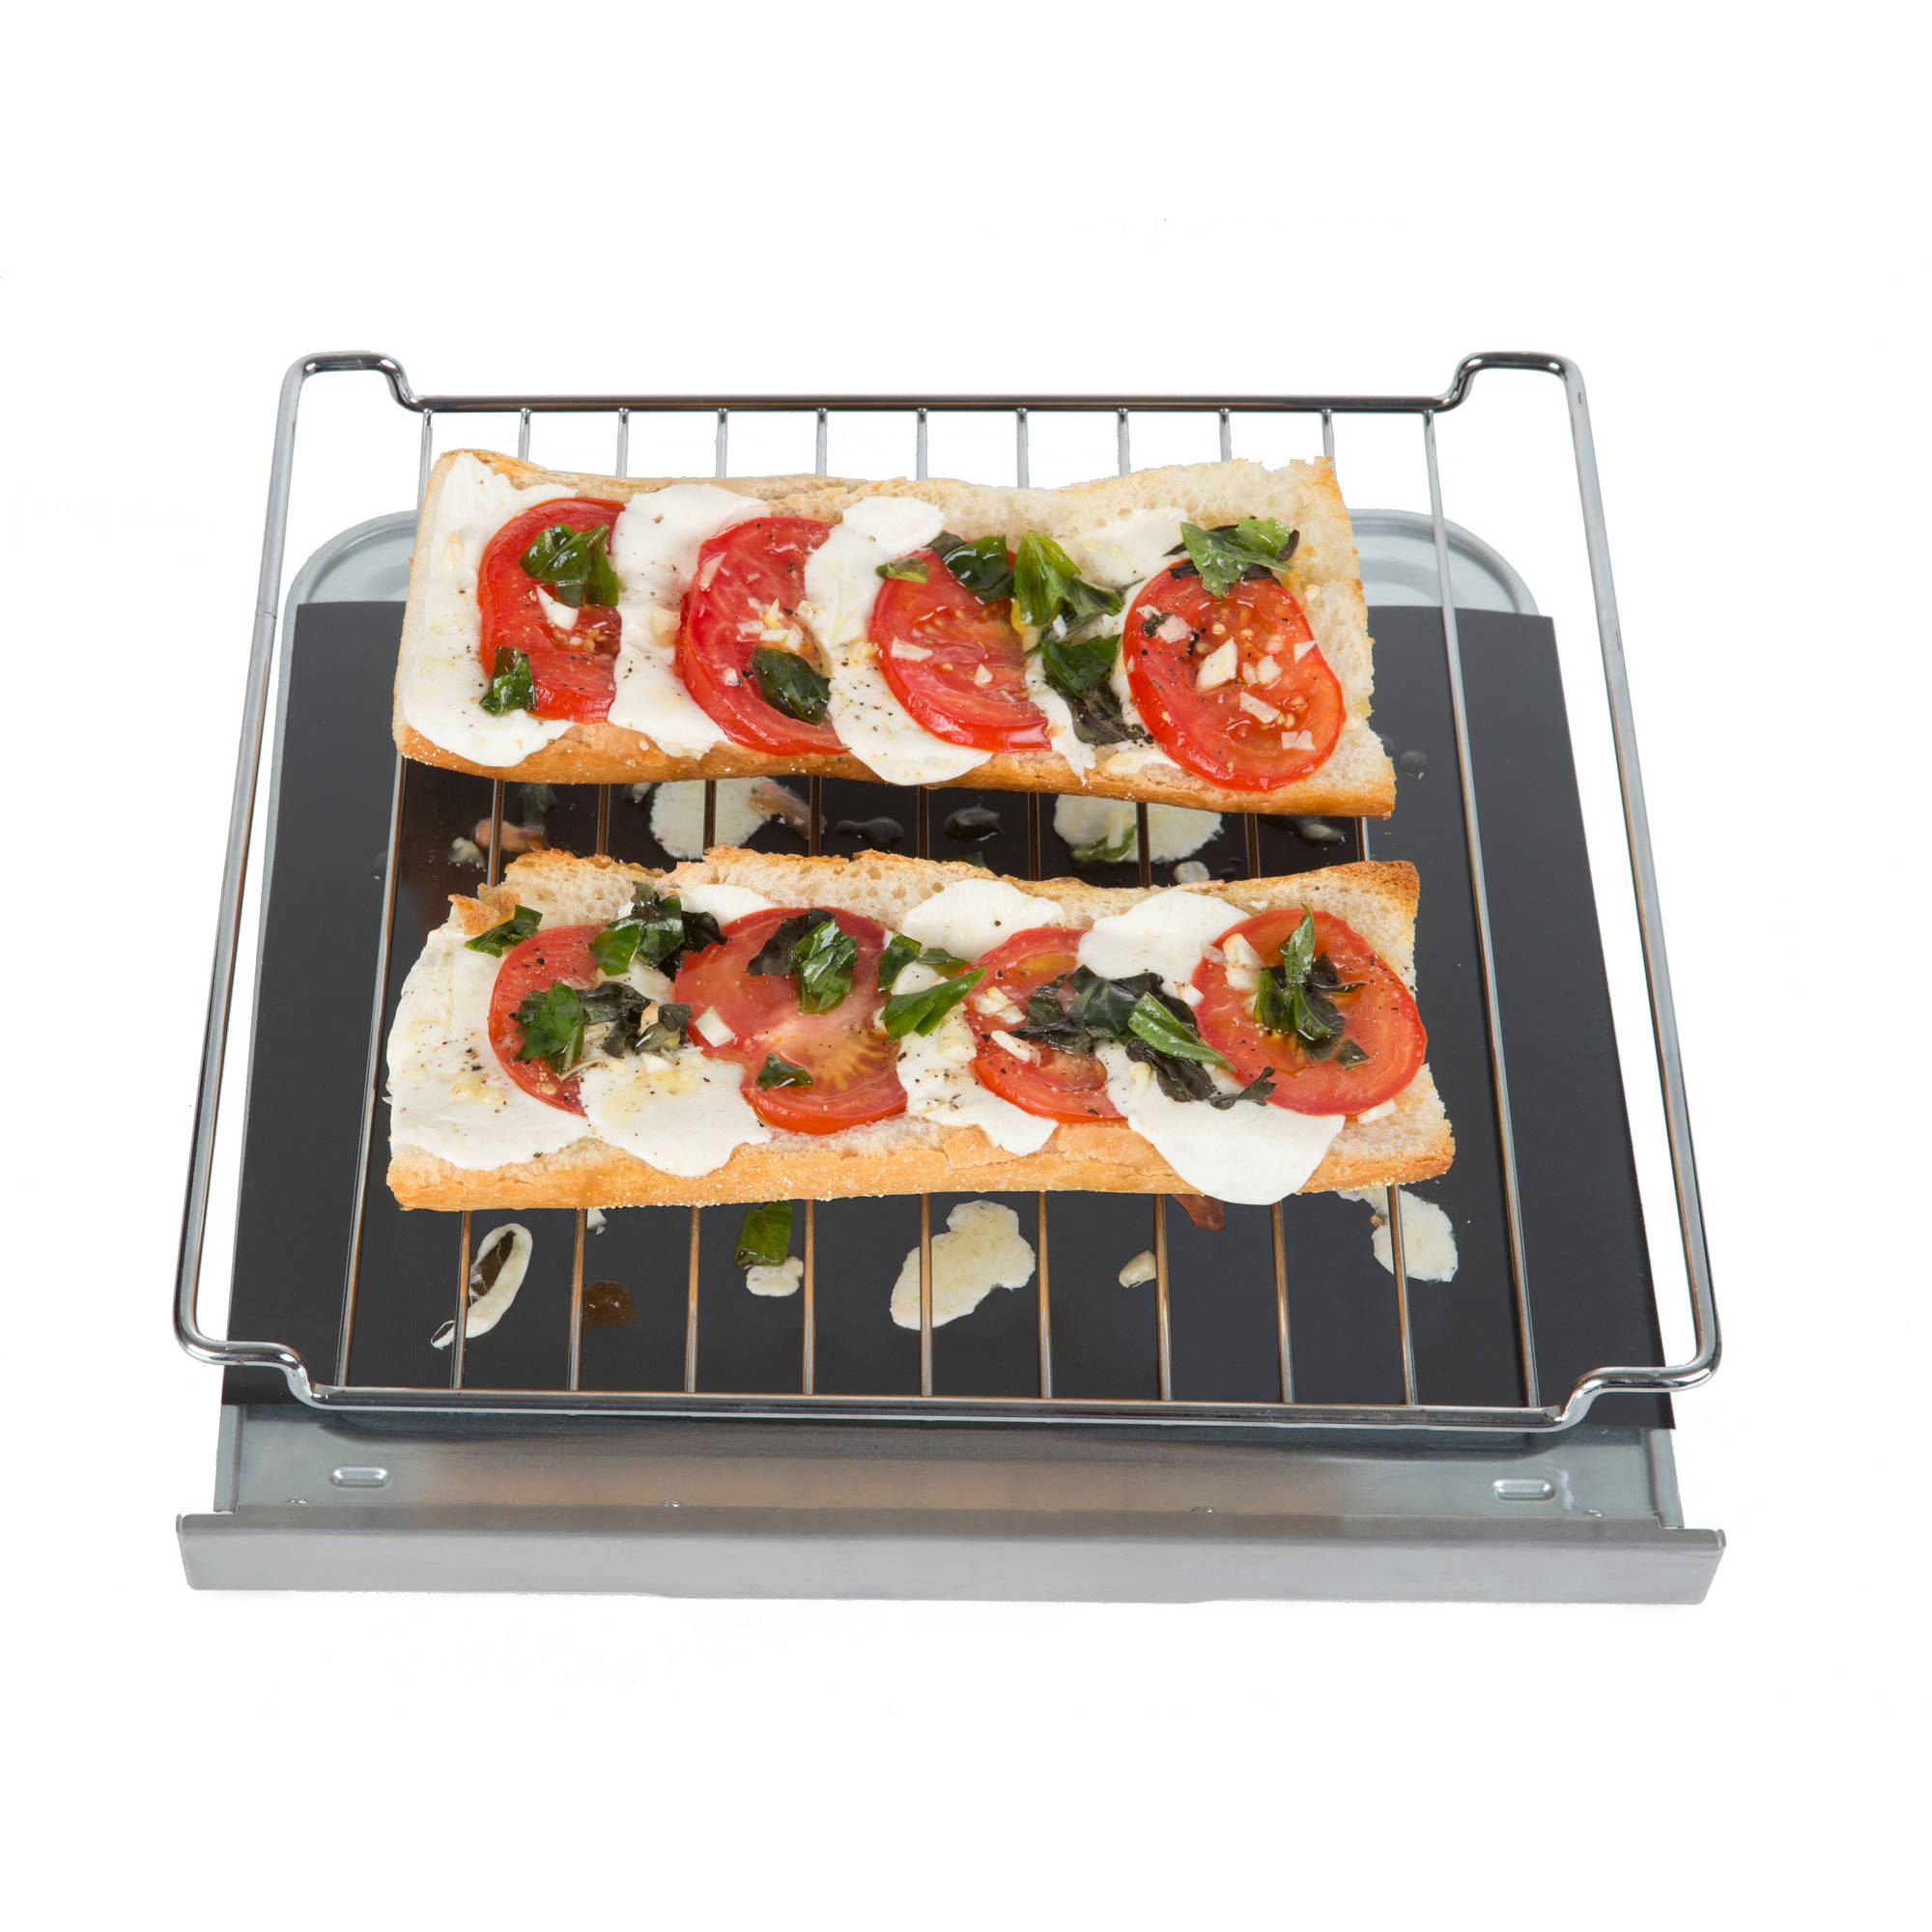 Chefs Oven Non- Stick Drip Catcher for Toaster Oven